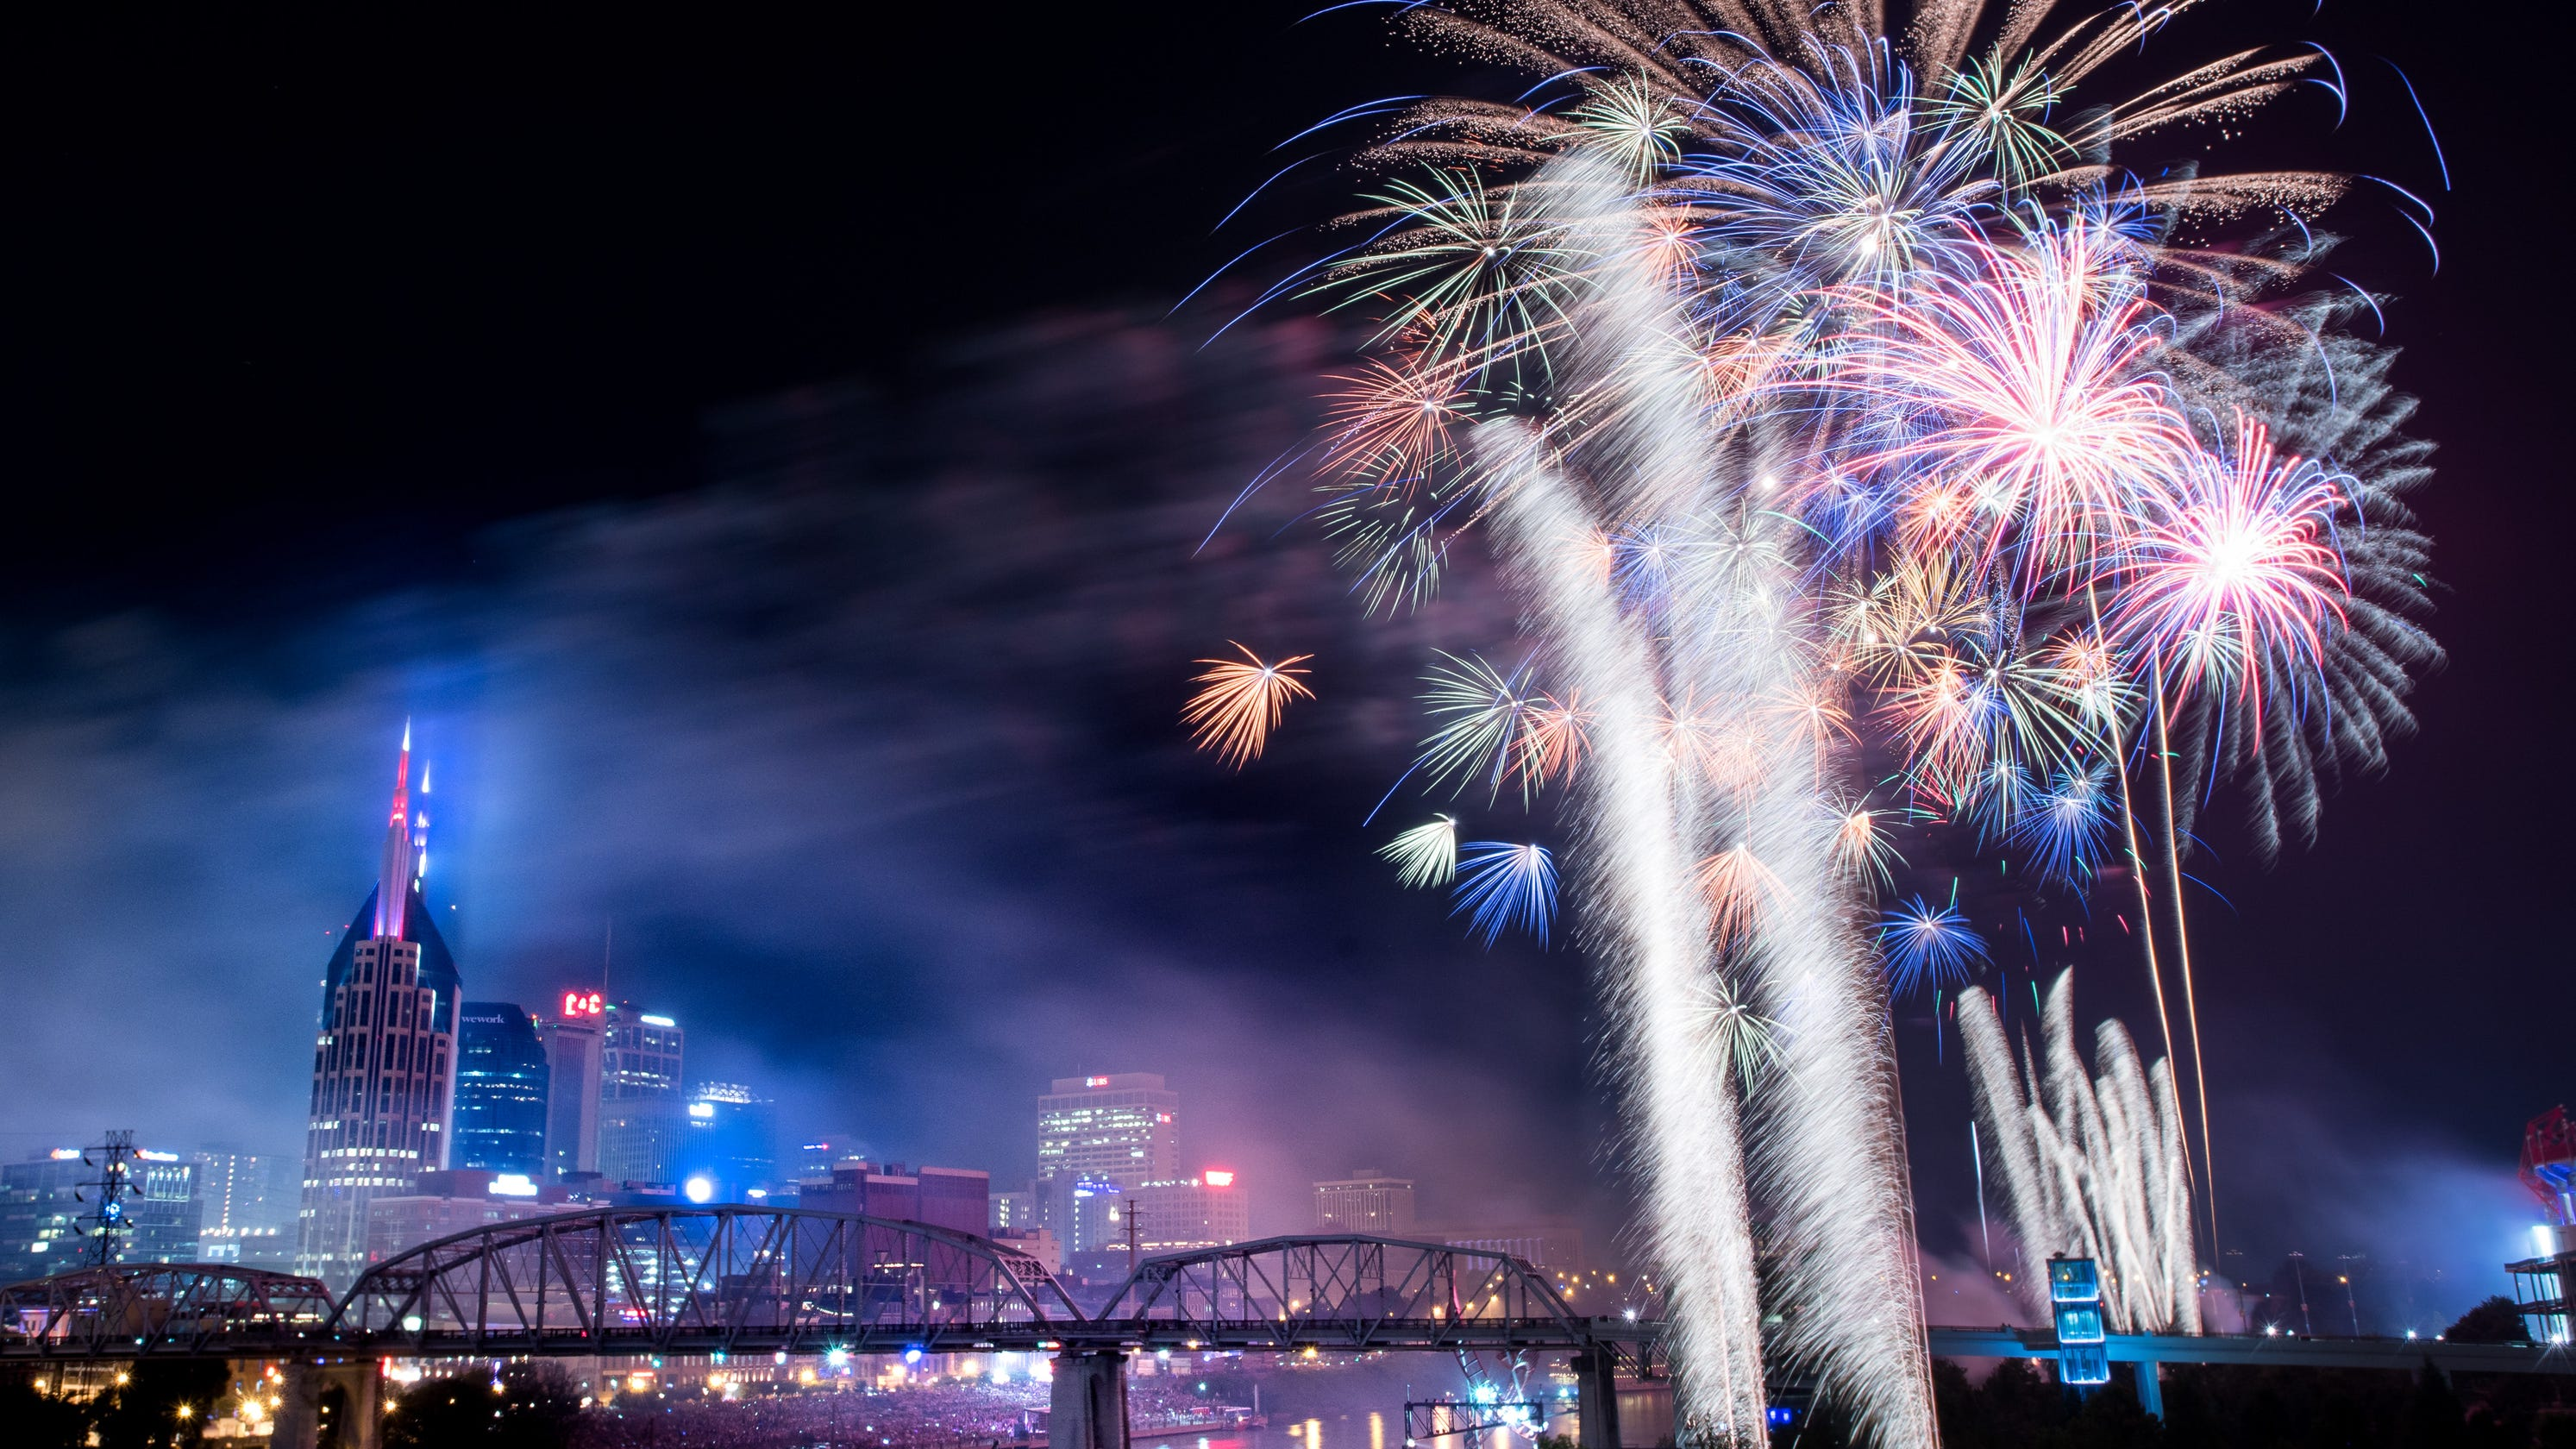 Nashville fireworks: How to watch Music City's 4th of July